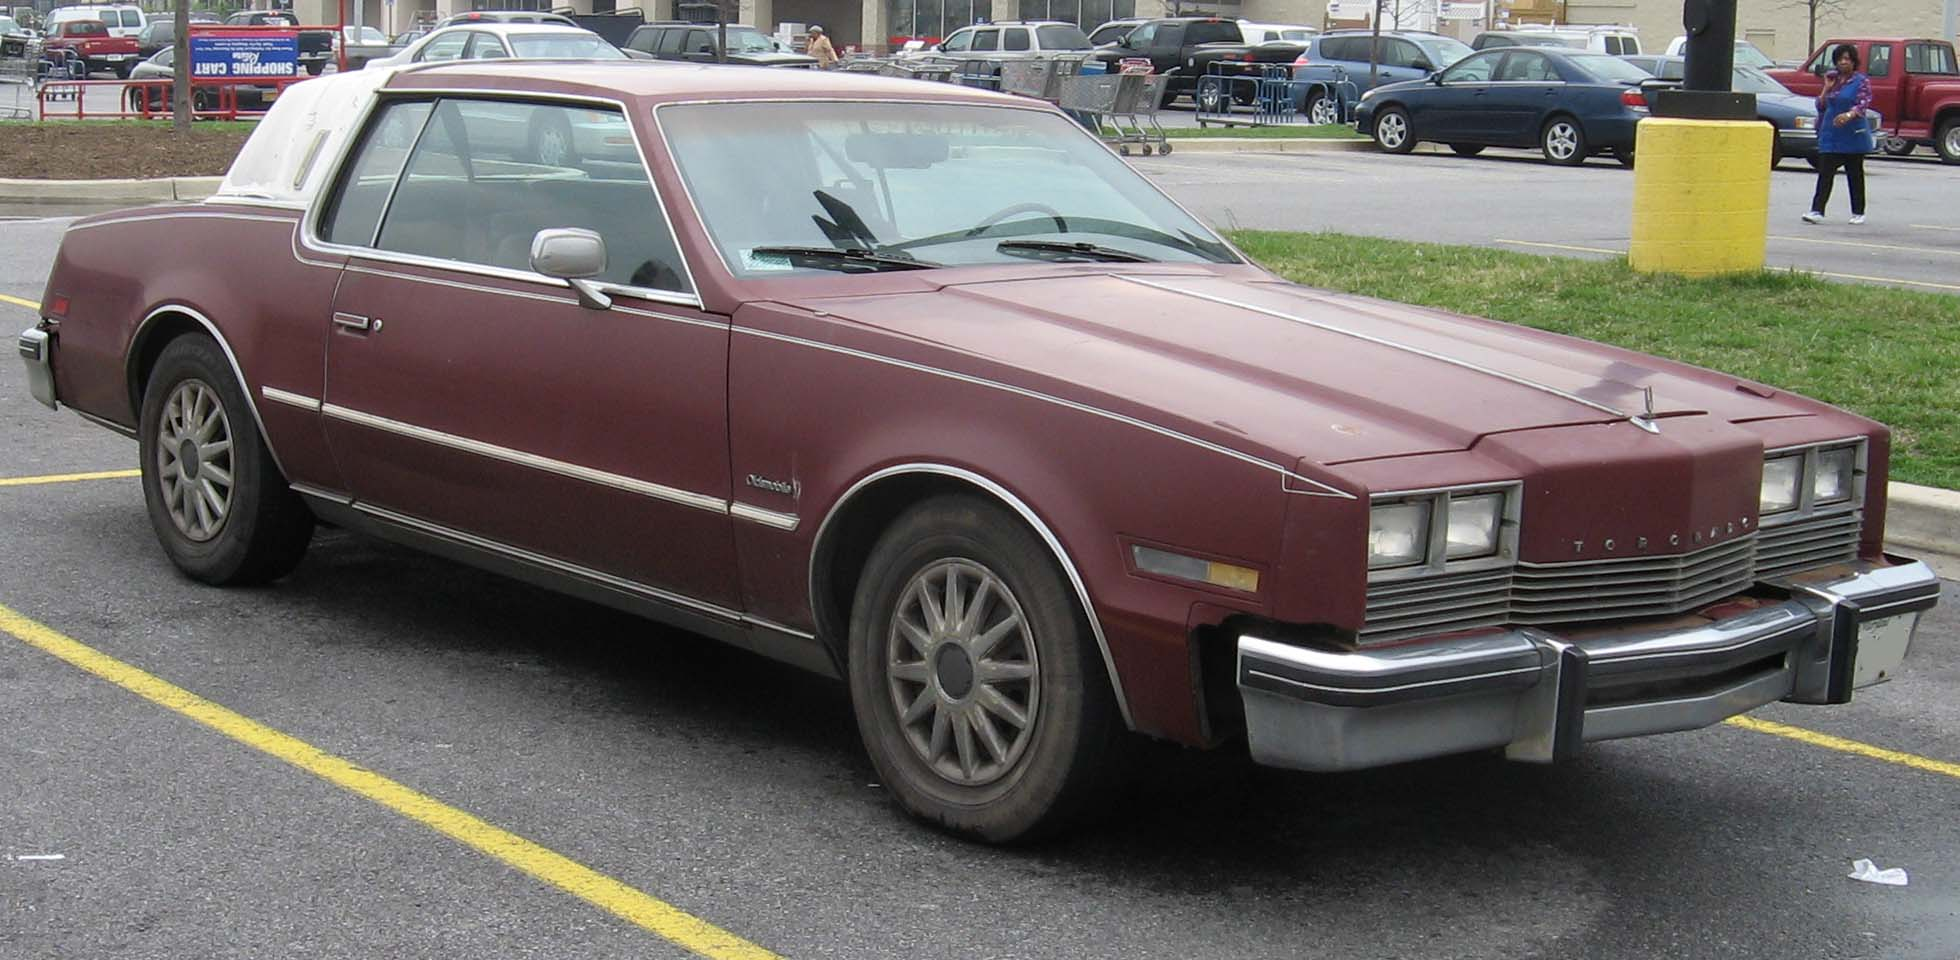 File:3rd-Oldsmobile-Toronado.jpg - Wikipedia, the free encyclopedia